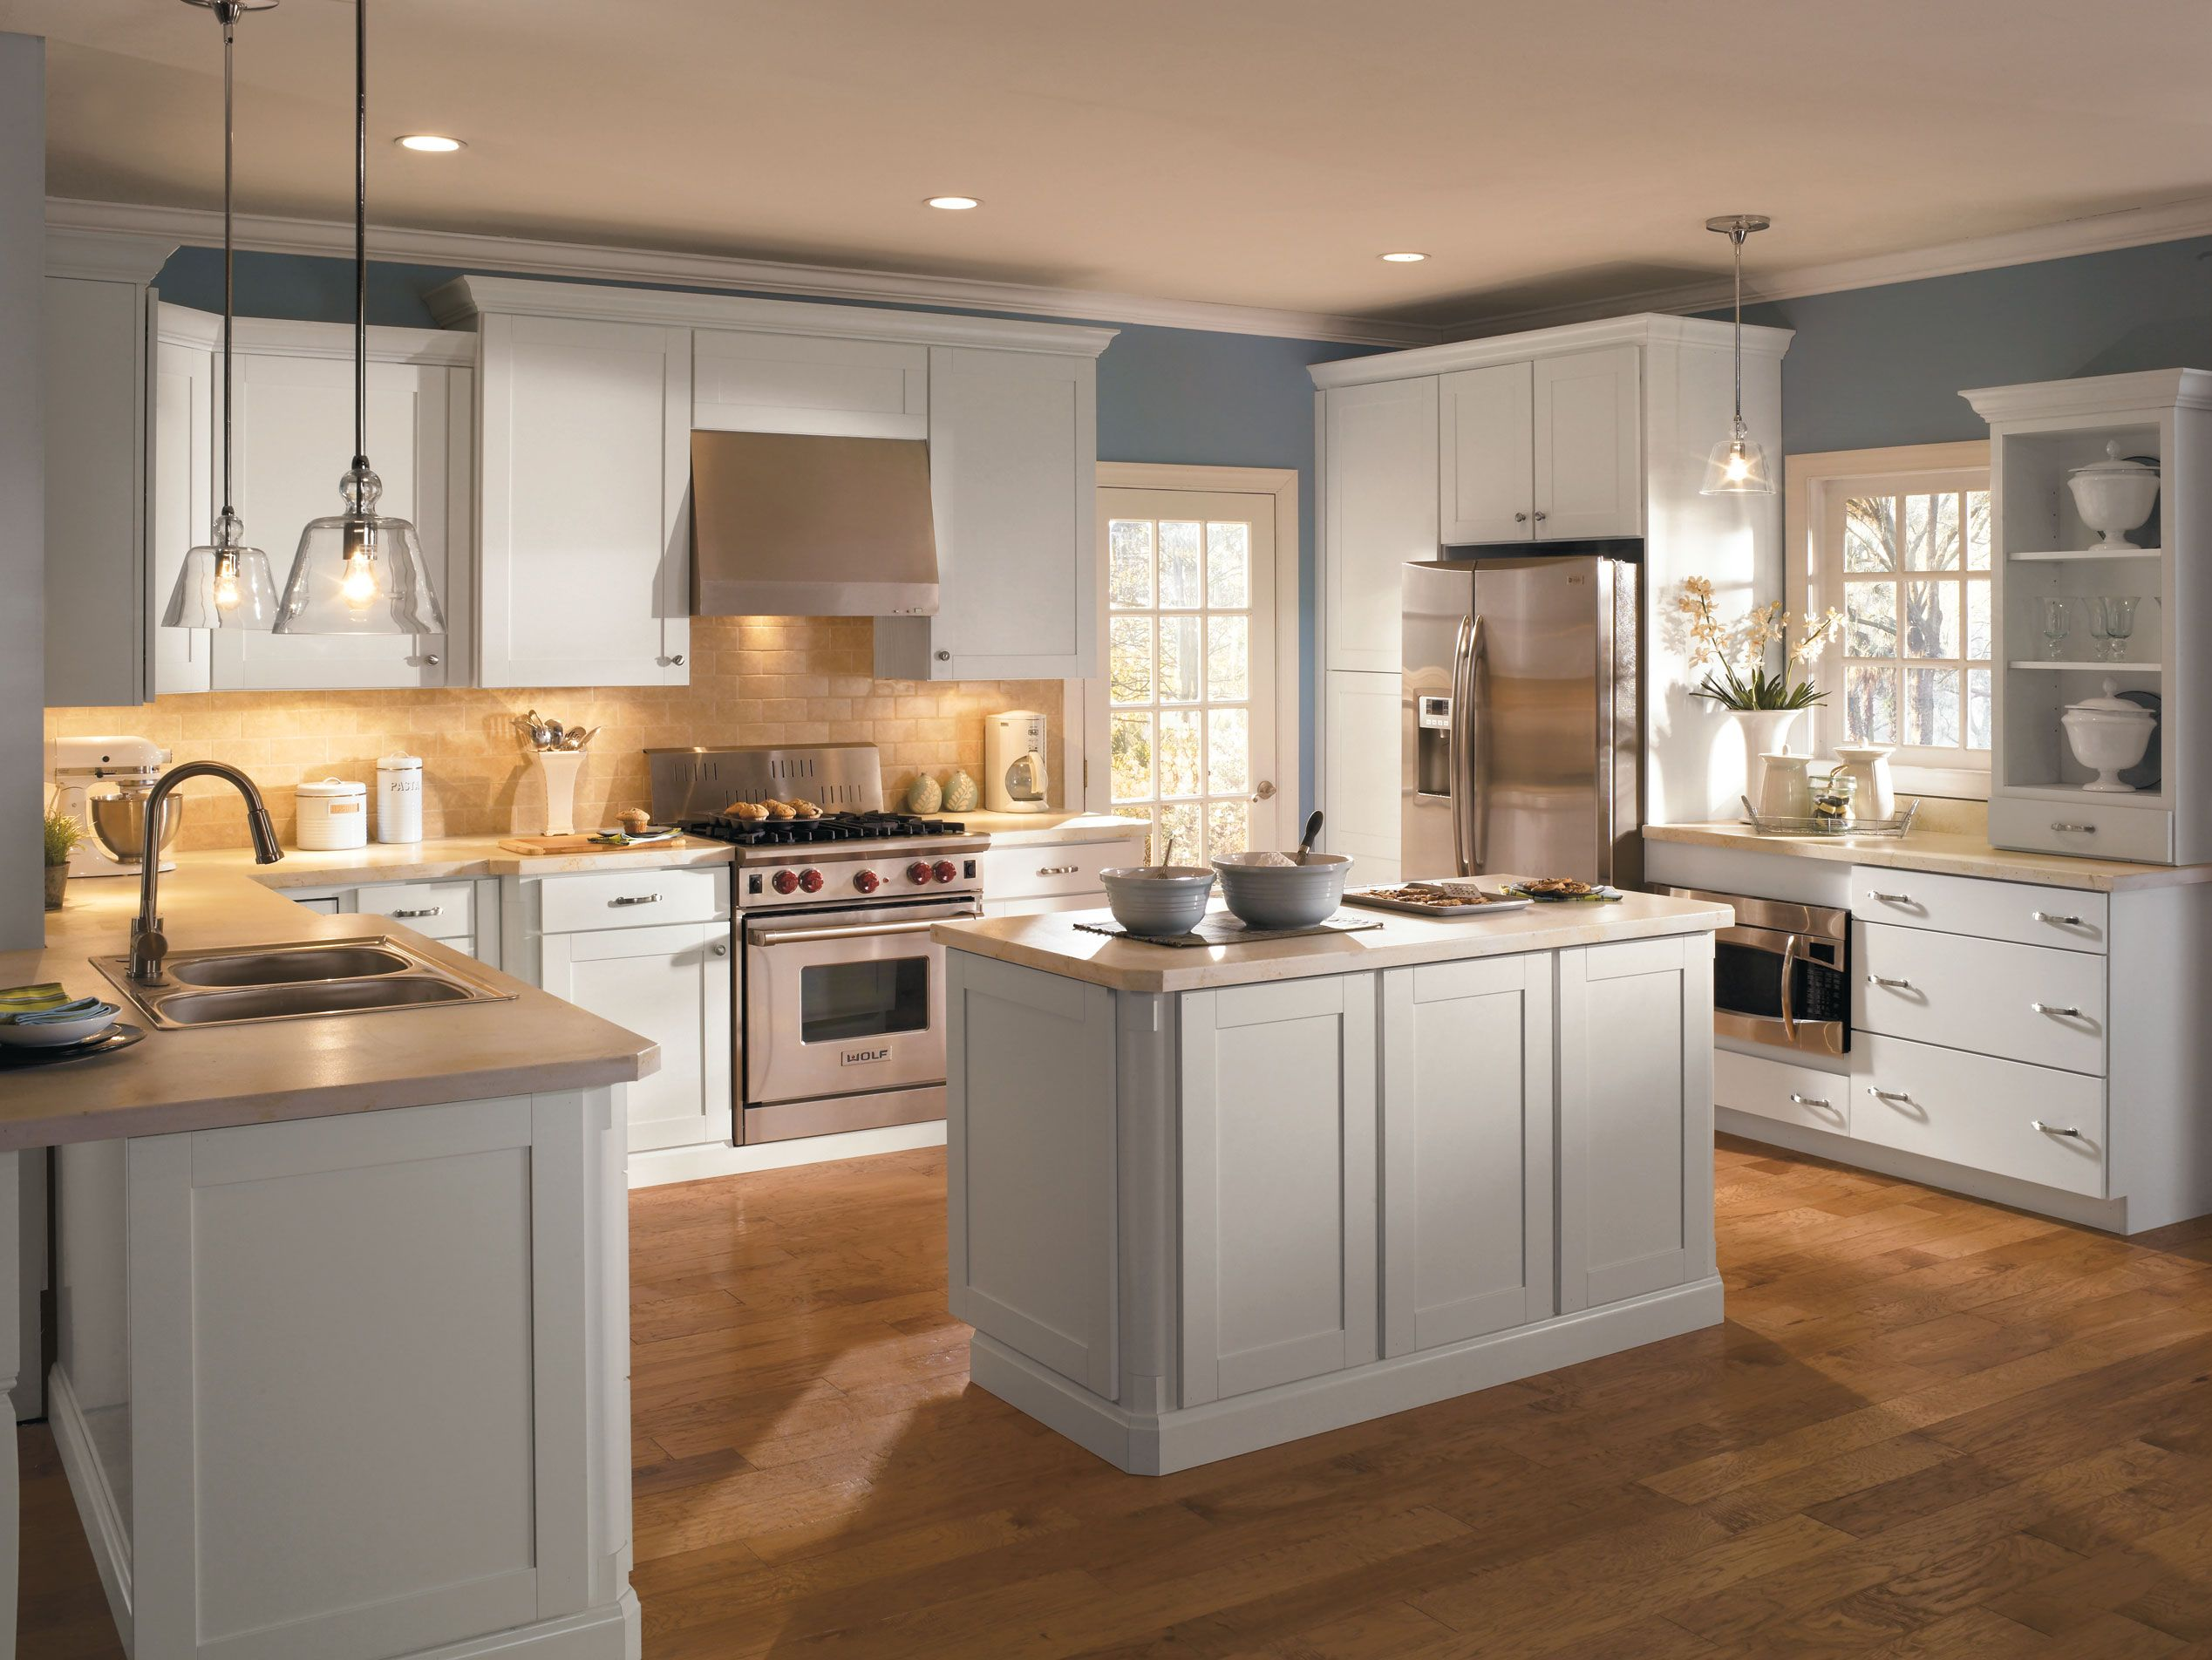 inspired by the sensibility of the distinctive shaker style inspired by the sensibility of the distinctive shaker style aristokraft cabinetry s monroe catures its beauty